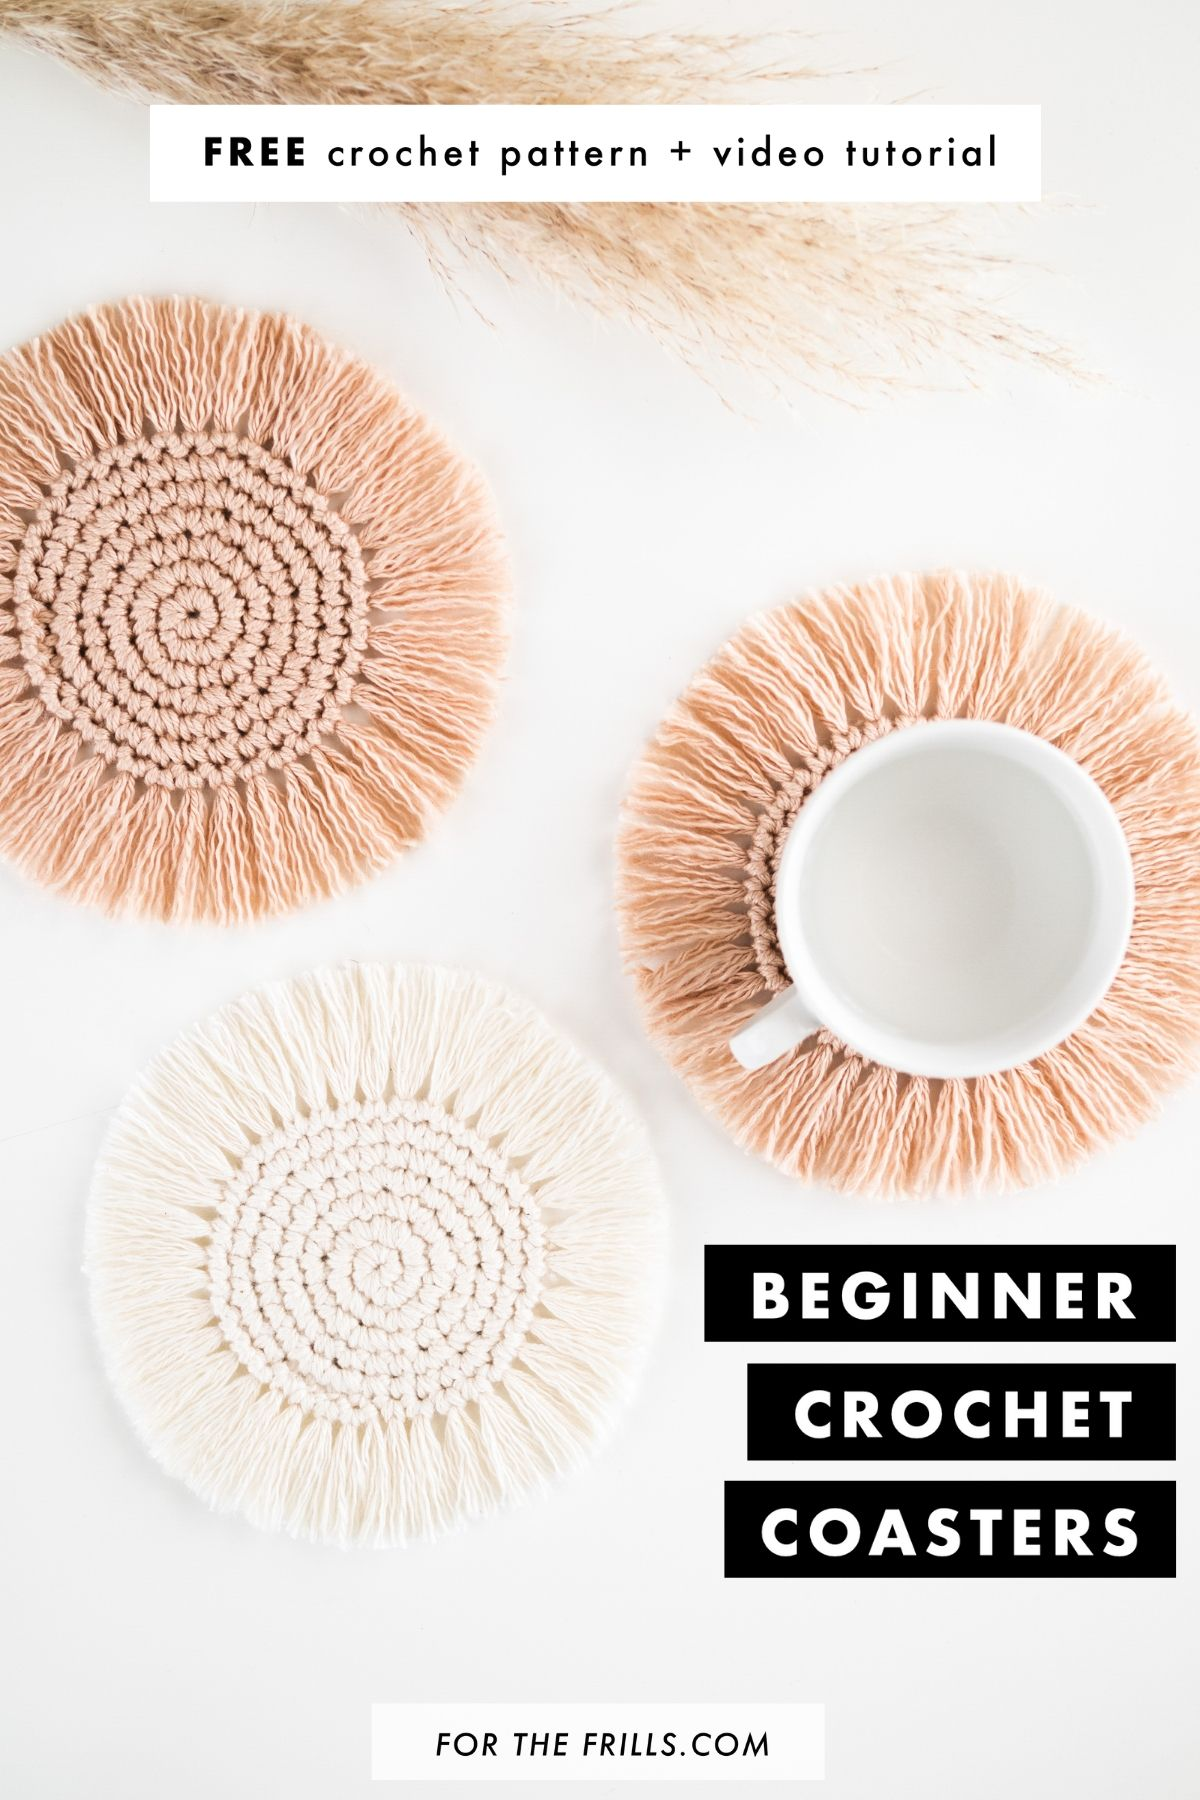 beginner crochet boho coasters free pattern video tutorial easy summer DIY fringe